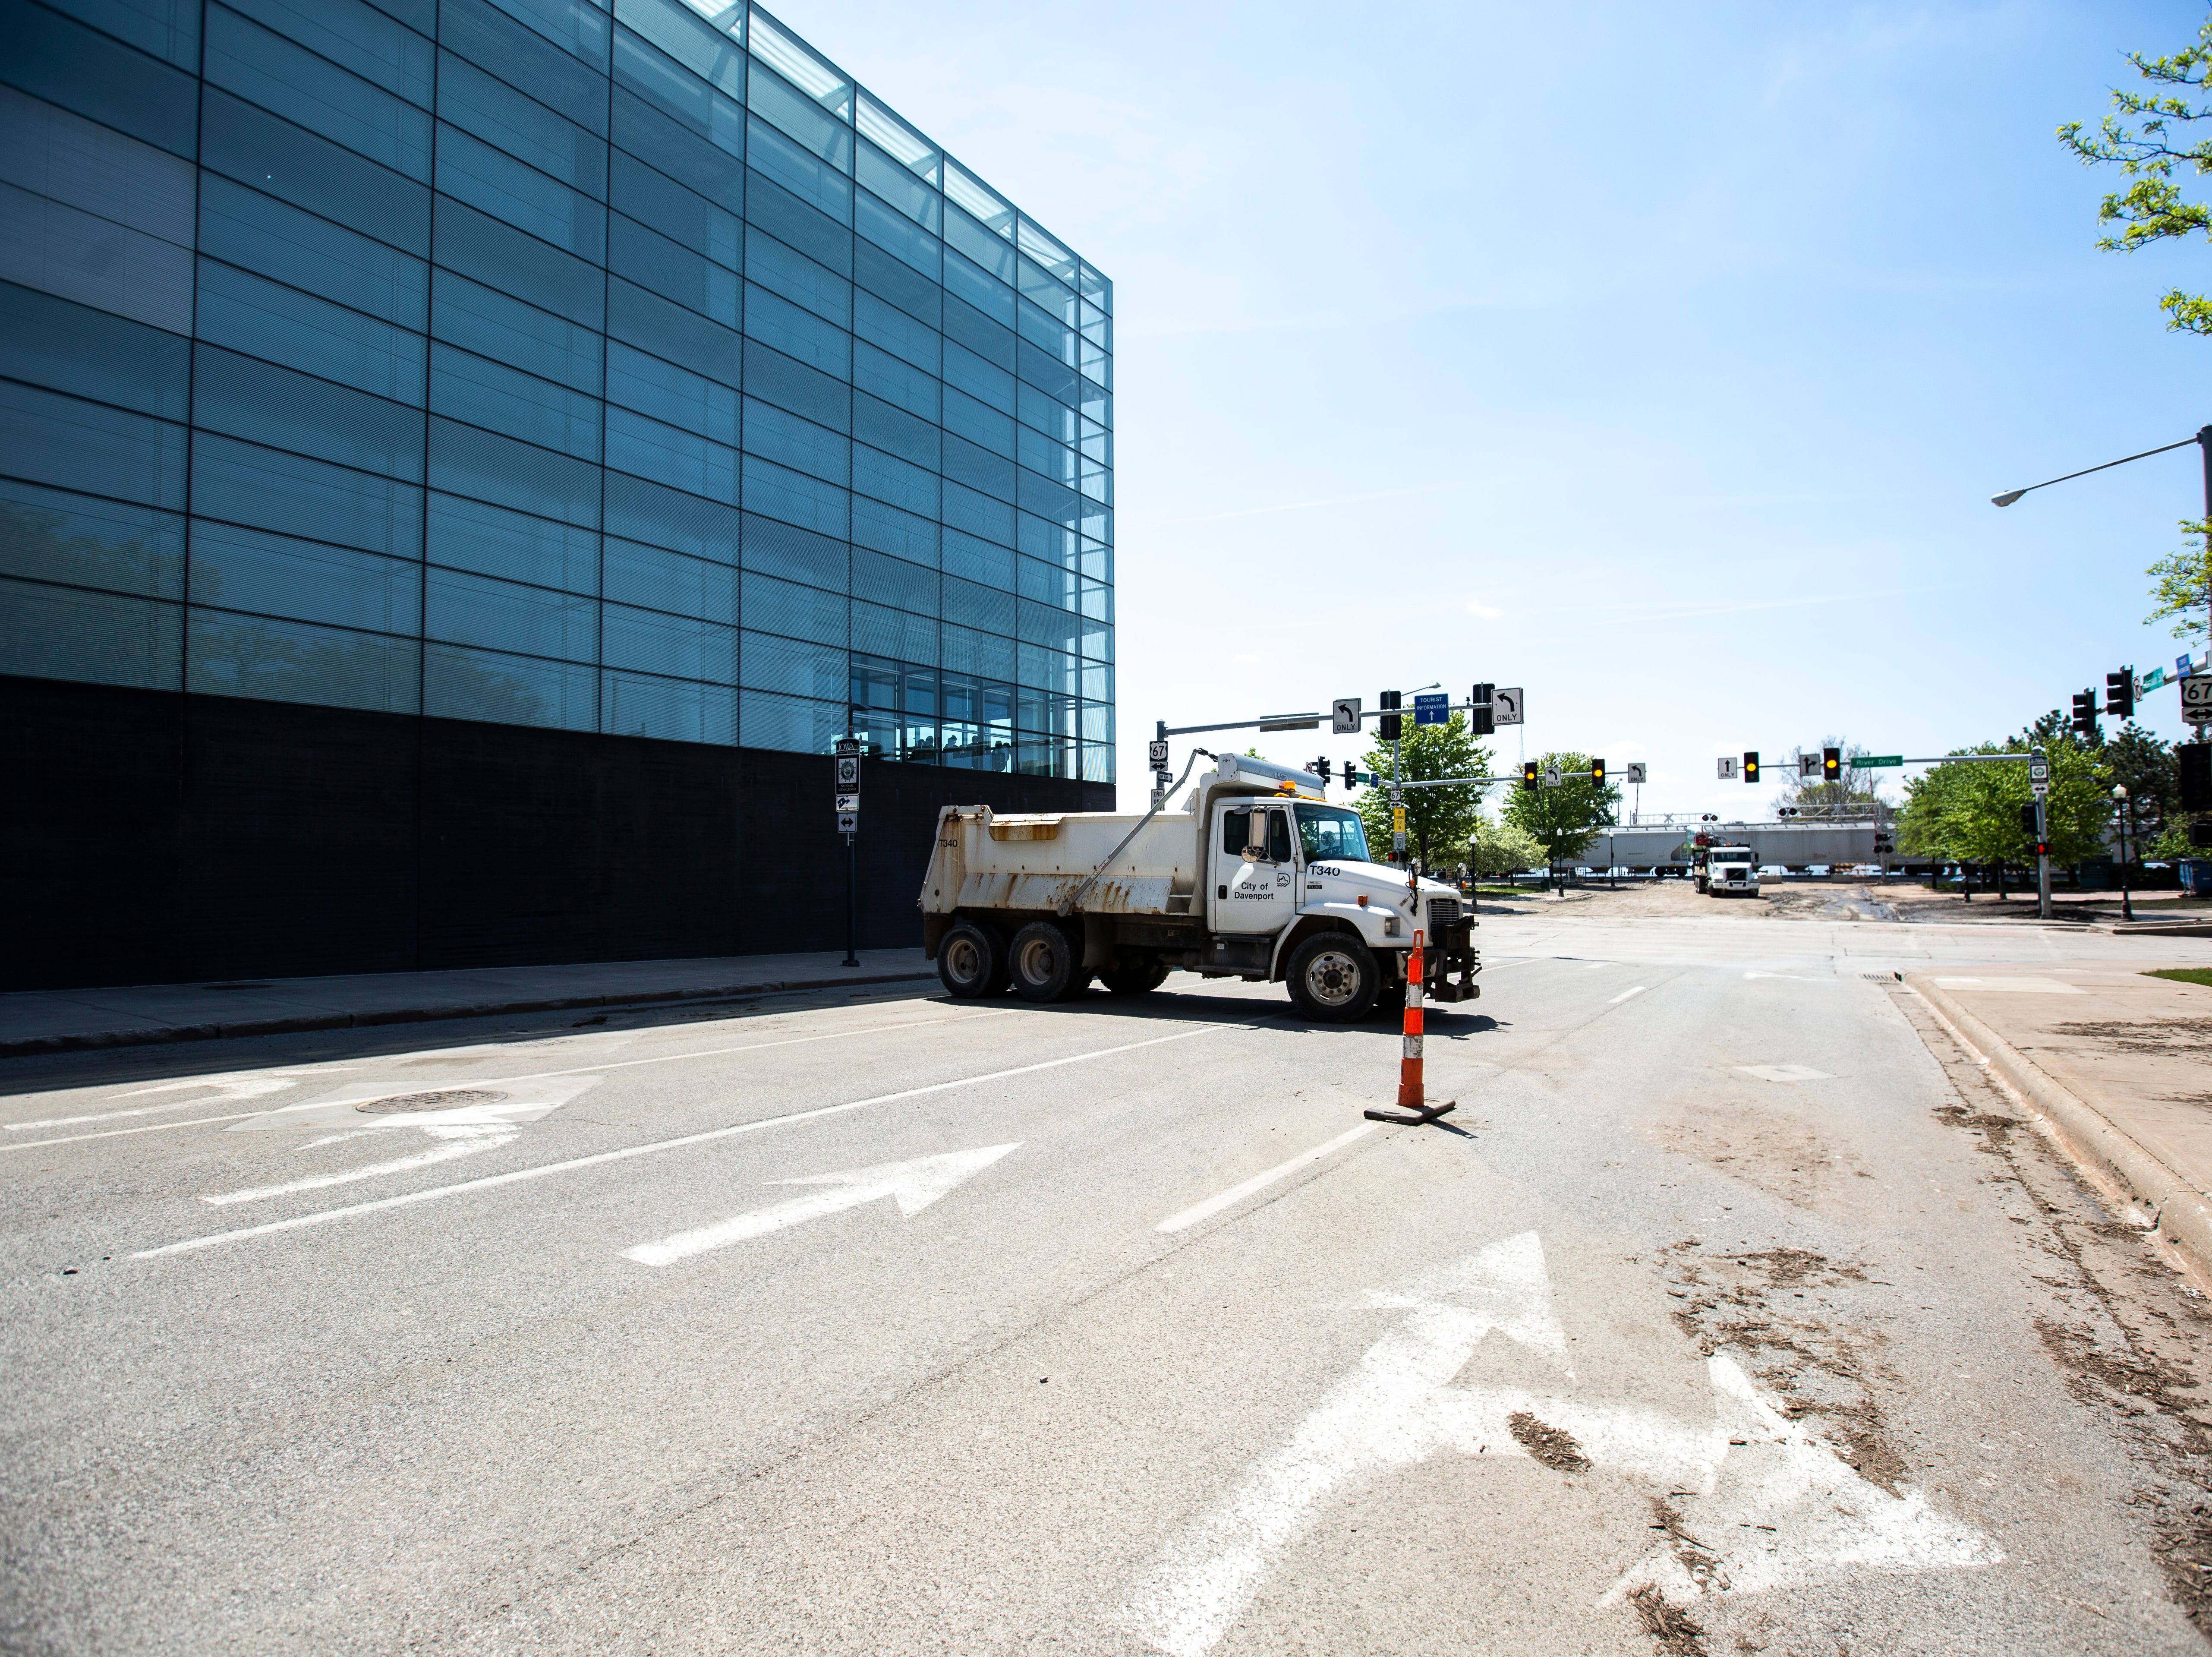 A City of Davenport vehicle parks next to the Figge Art Museum as cleanup begins after floodwaters receded, Wednesday, May 15, 2019, along Harrison Street towards River Drive in downtown Davenport, Iowa.